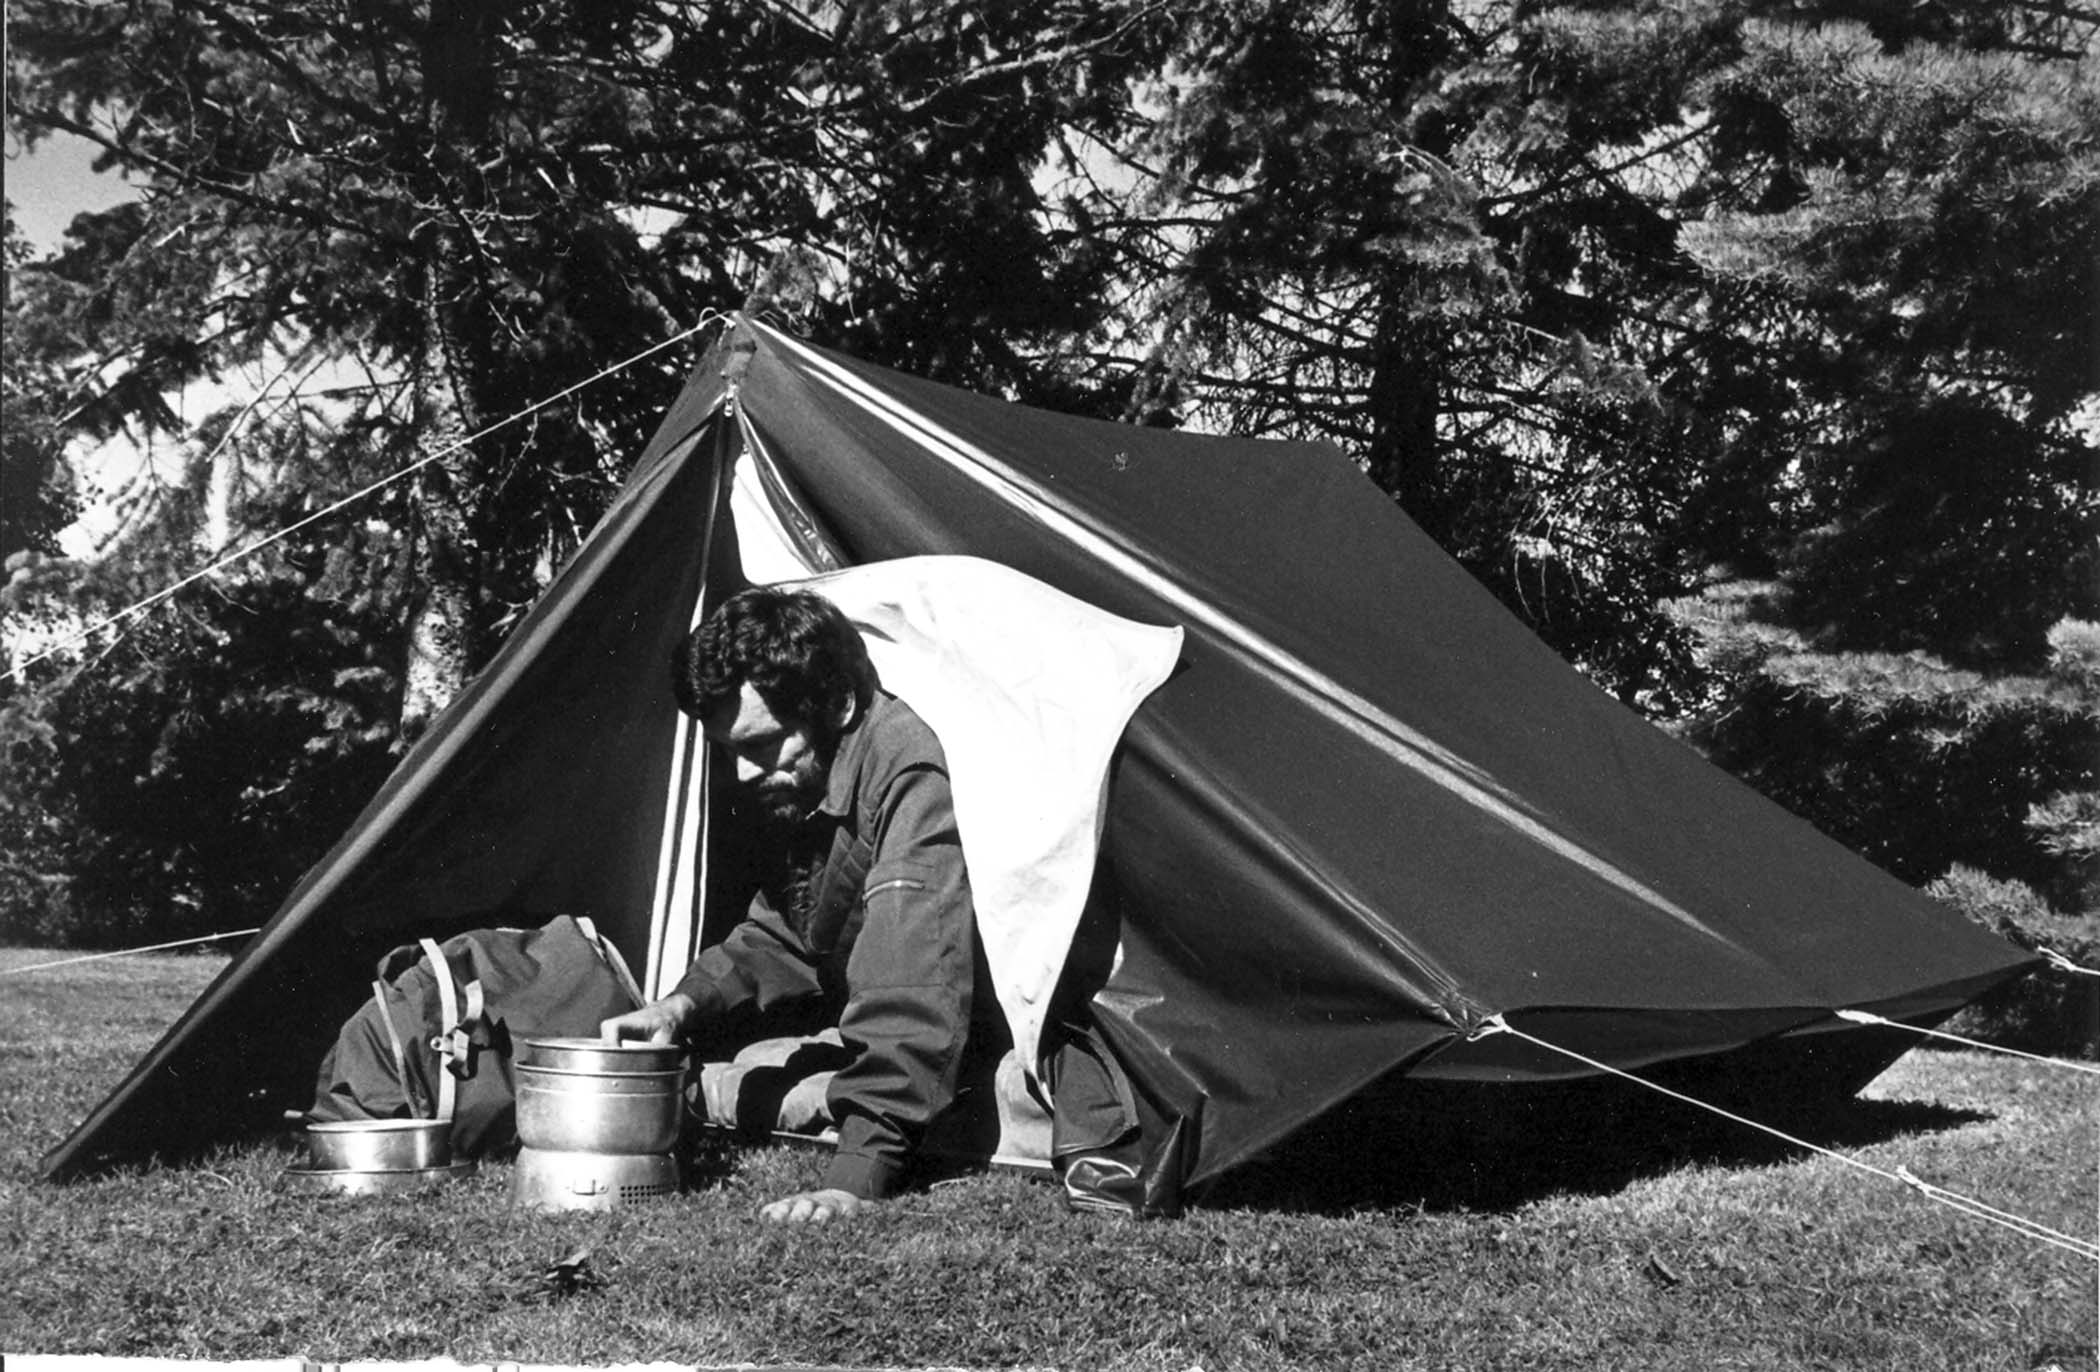 Bo Hilleberg testing the new Keb u2013 circa 1973. This was Hillebergu0027s first tent and the first commercial tent with a unitized double-wall construction. & The Worldu0027s Best Tentsu201445 Years in the Making u2013 Outside Daily